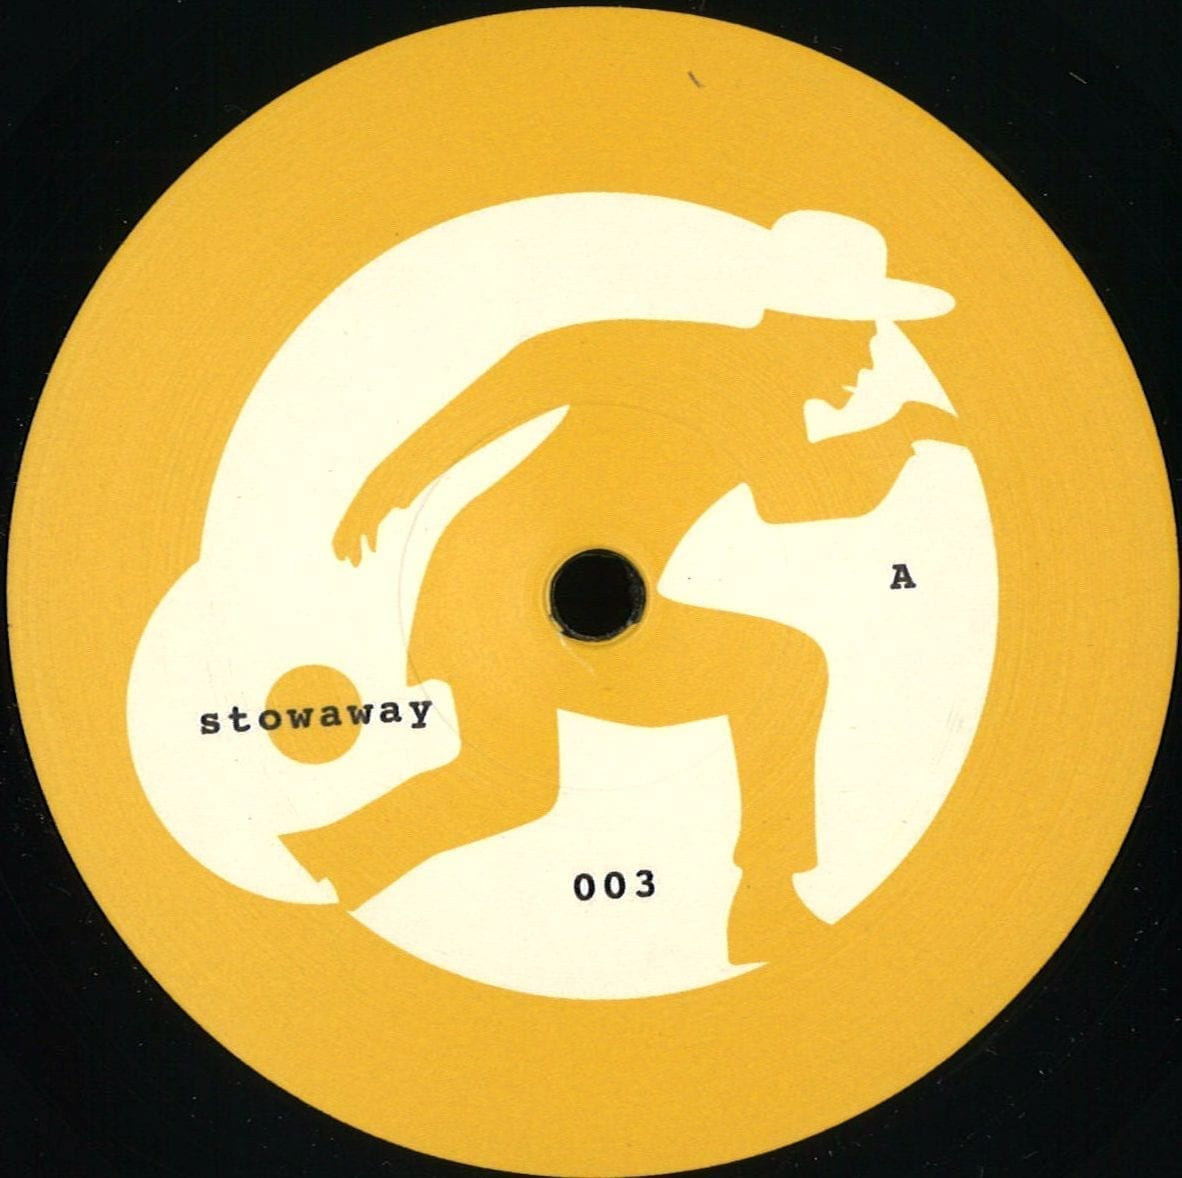 Unknown – Unknown / Stowaway 003 [Stowaway]